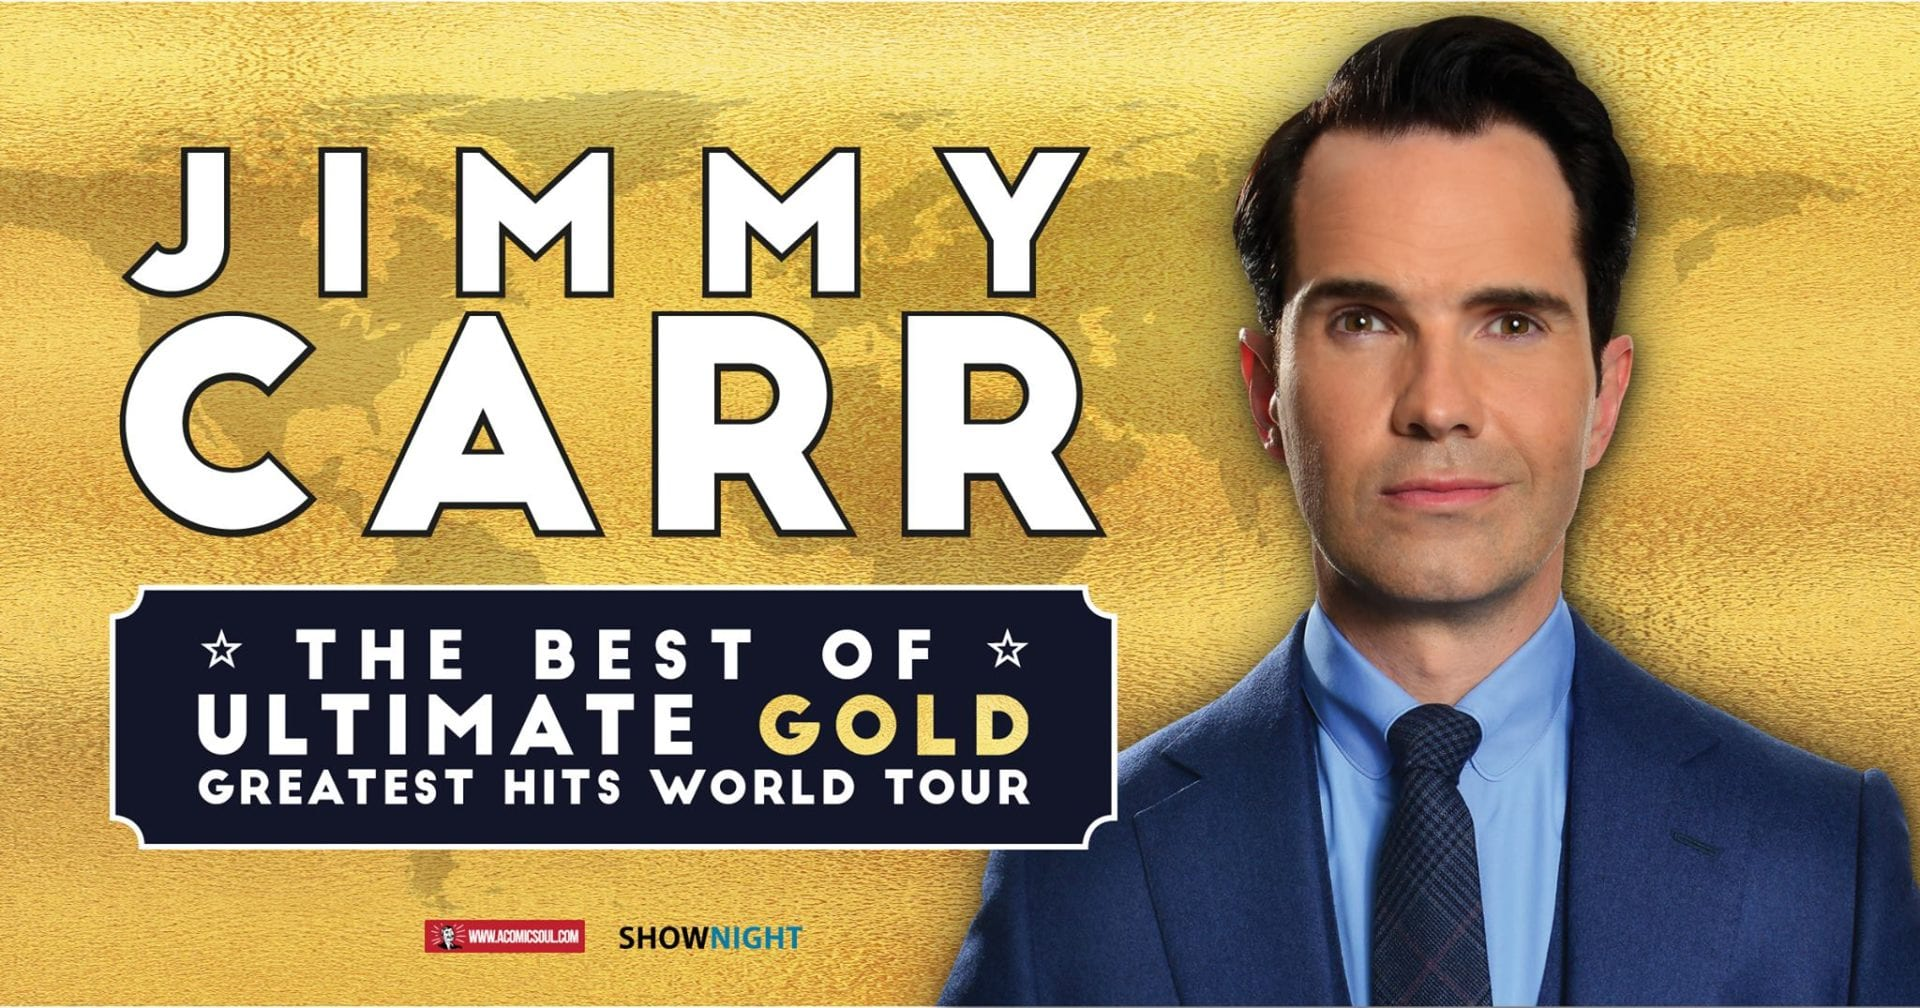 Jimmy Carr, The Best of, Ultimate, Gold, Greatest Hits Tour in Seoul